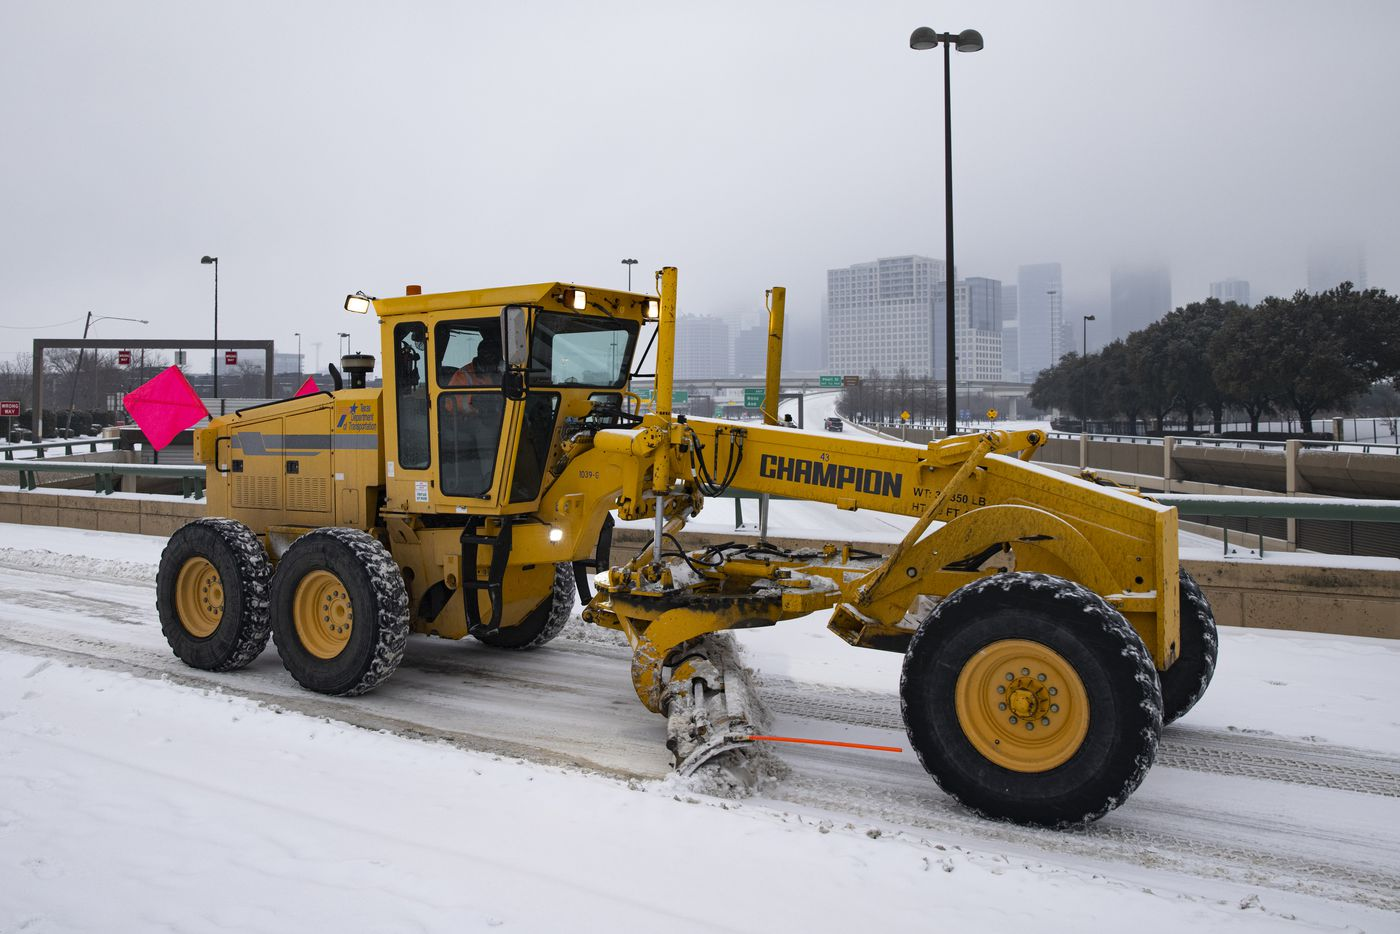 A TxDOT snowplow clears snow from N Hall St over North Central Expressway in Dallas on Wednesday, Feb. 17, 2021. Millions of Texans have lost power amid this record-breaking winter storm.